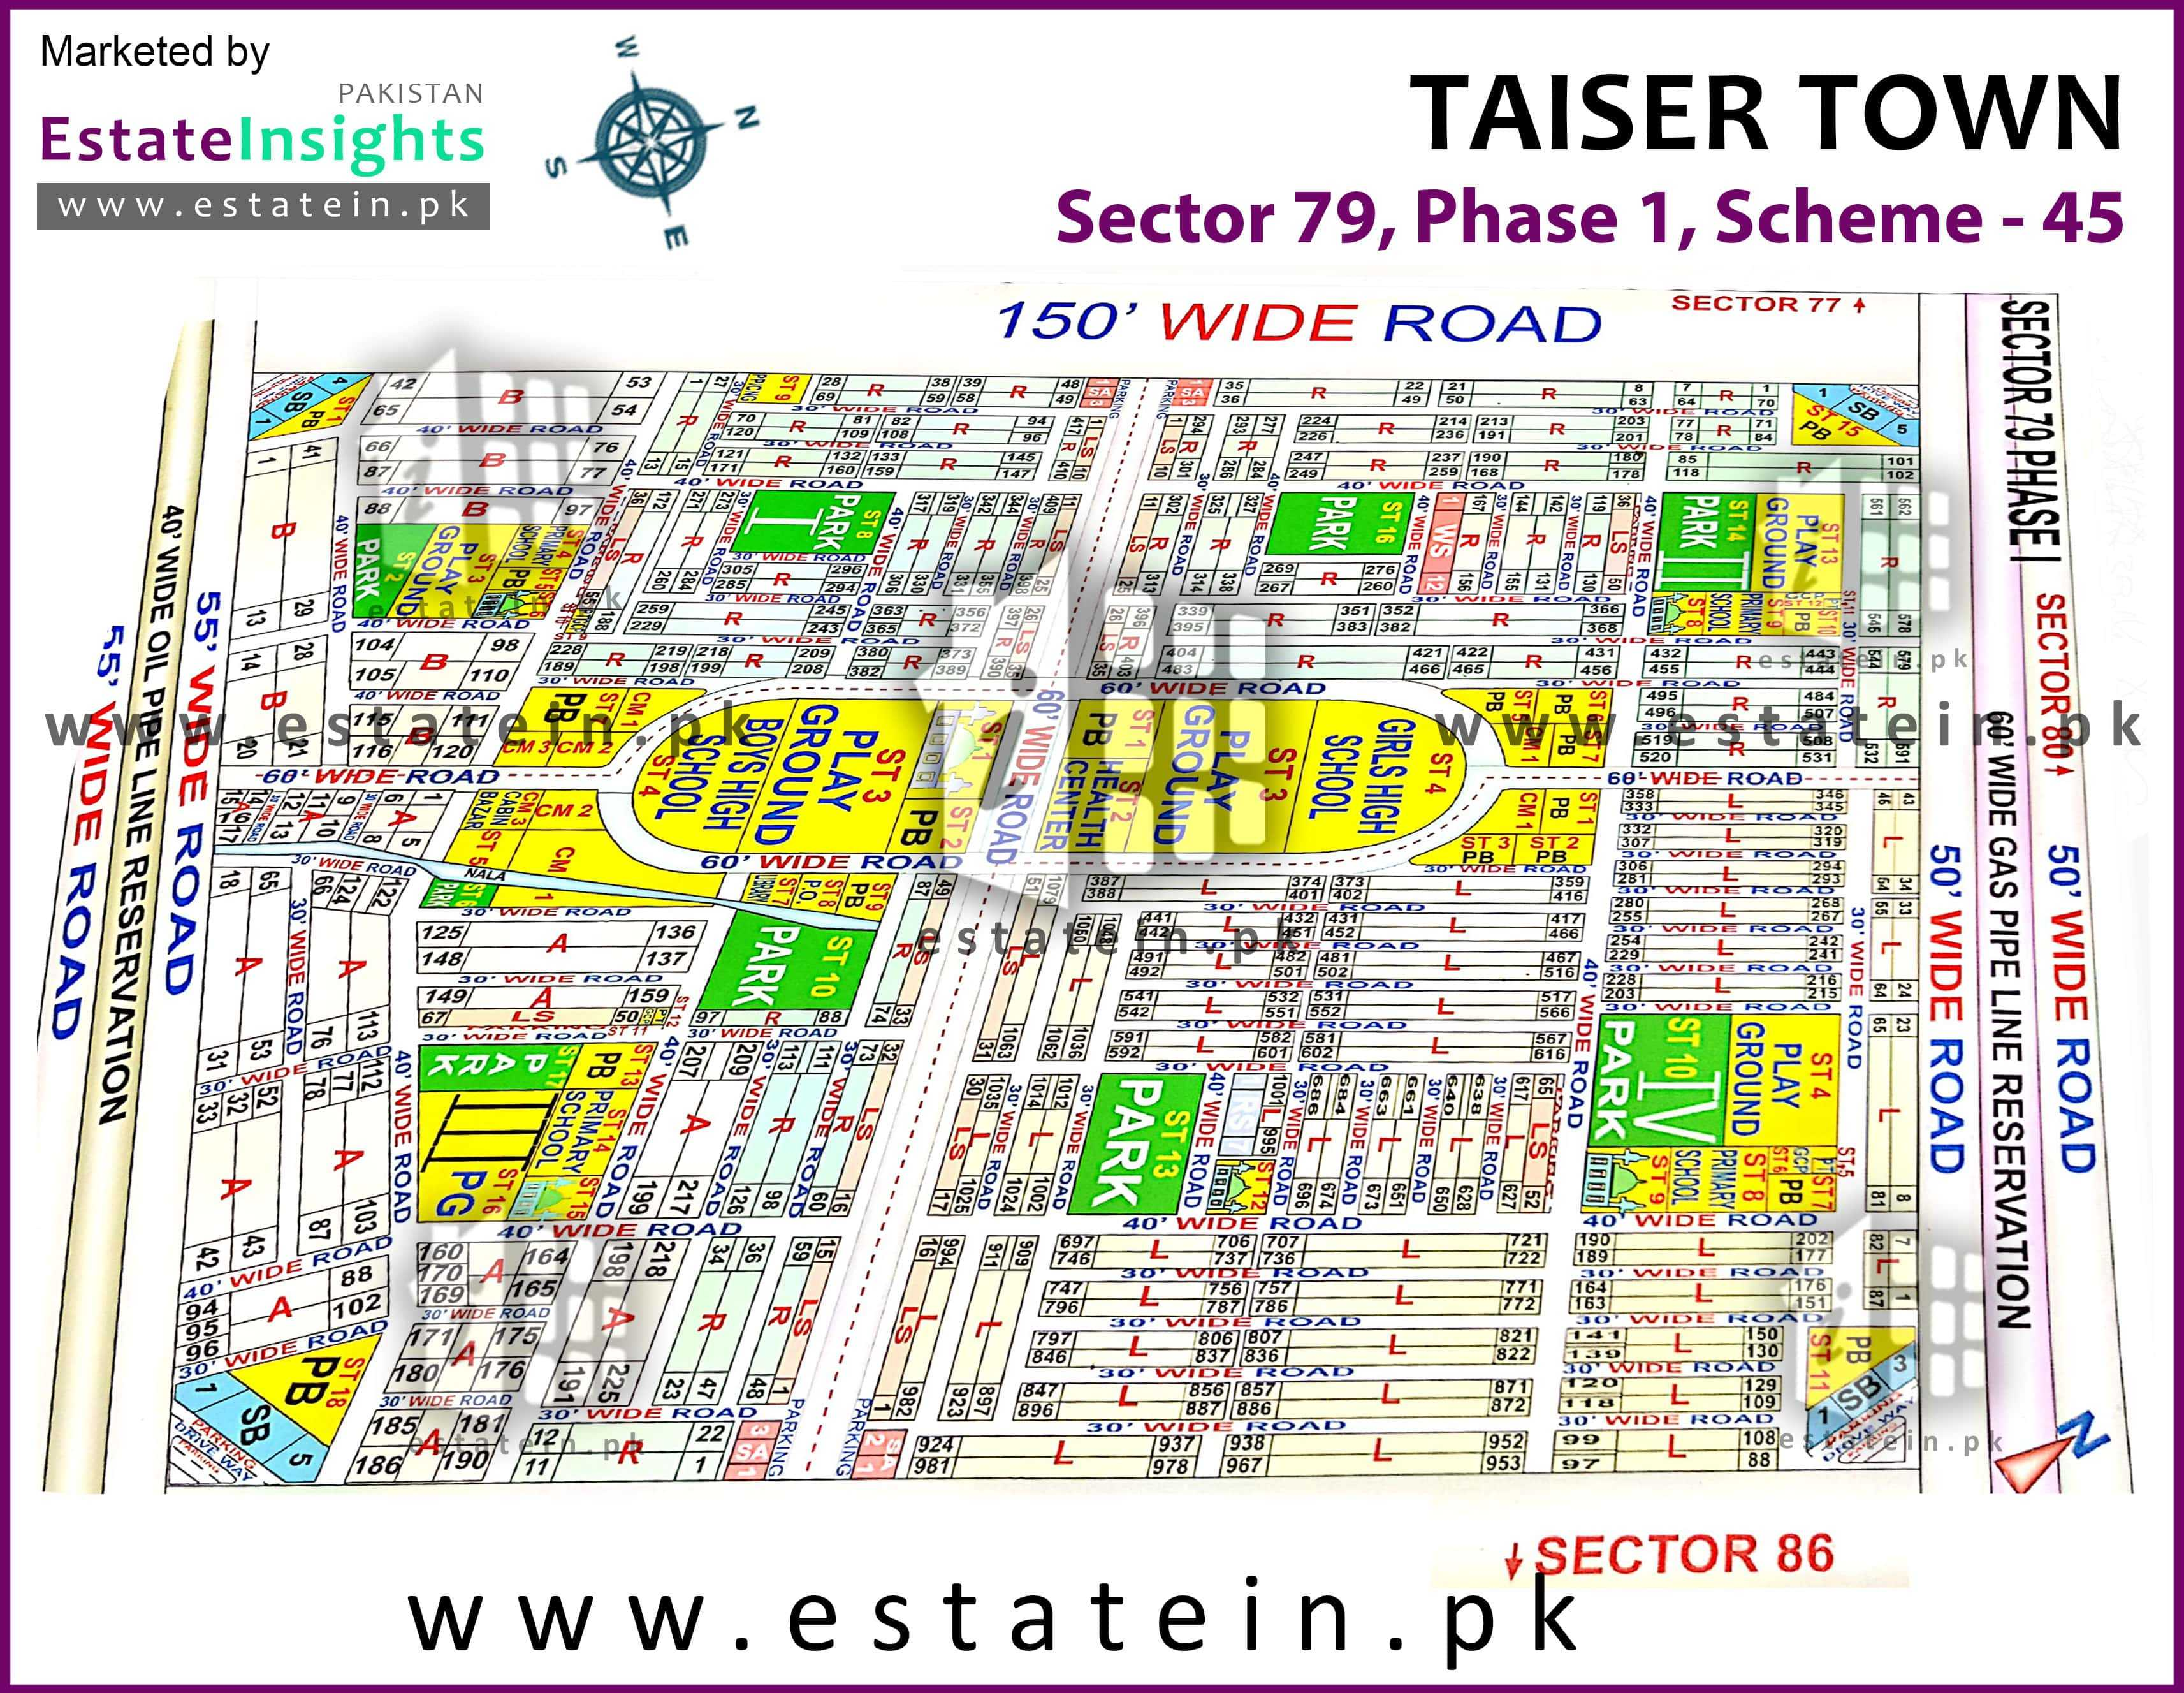 Site Plan of Sector 79 of Taiser Town Phase I